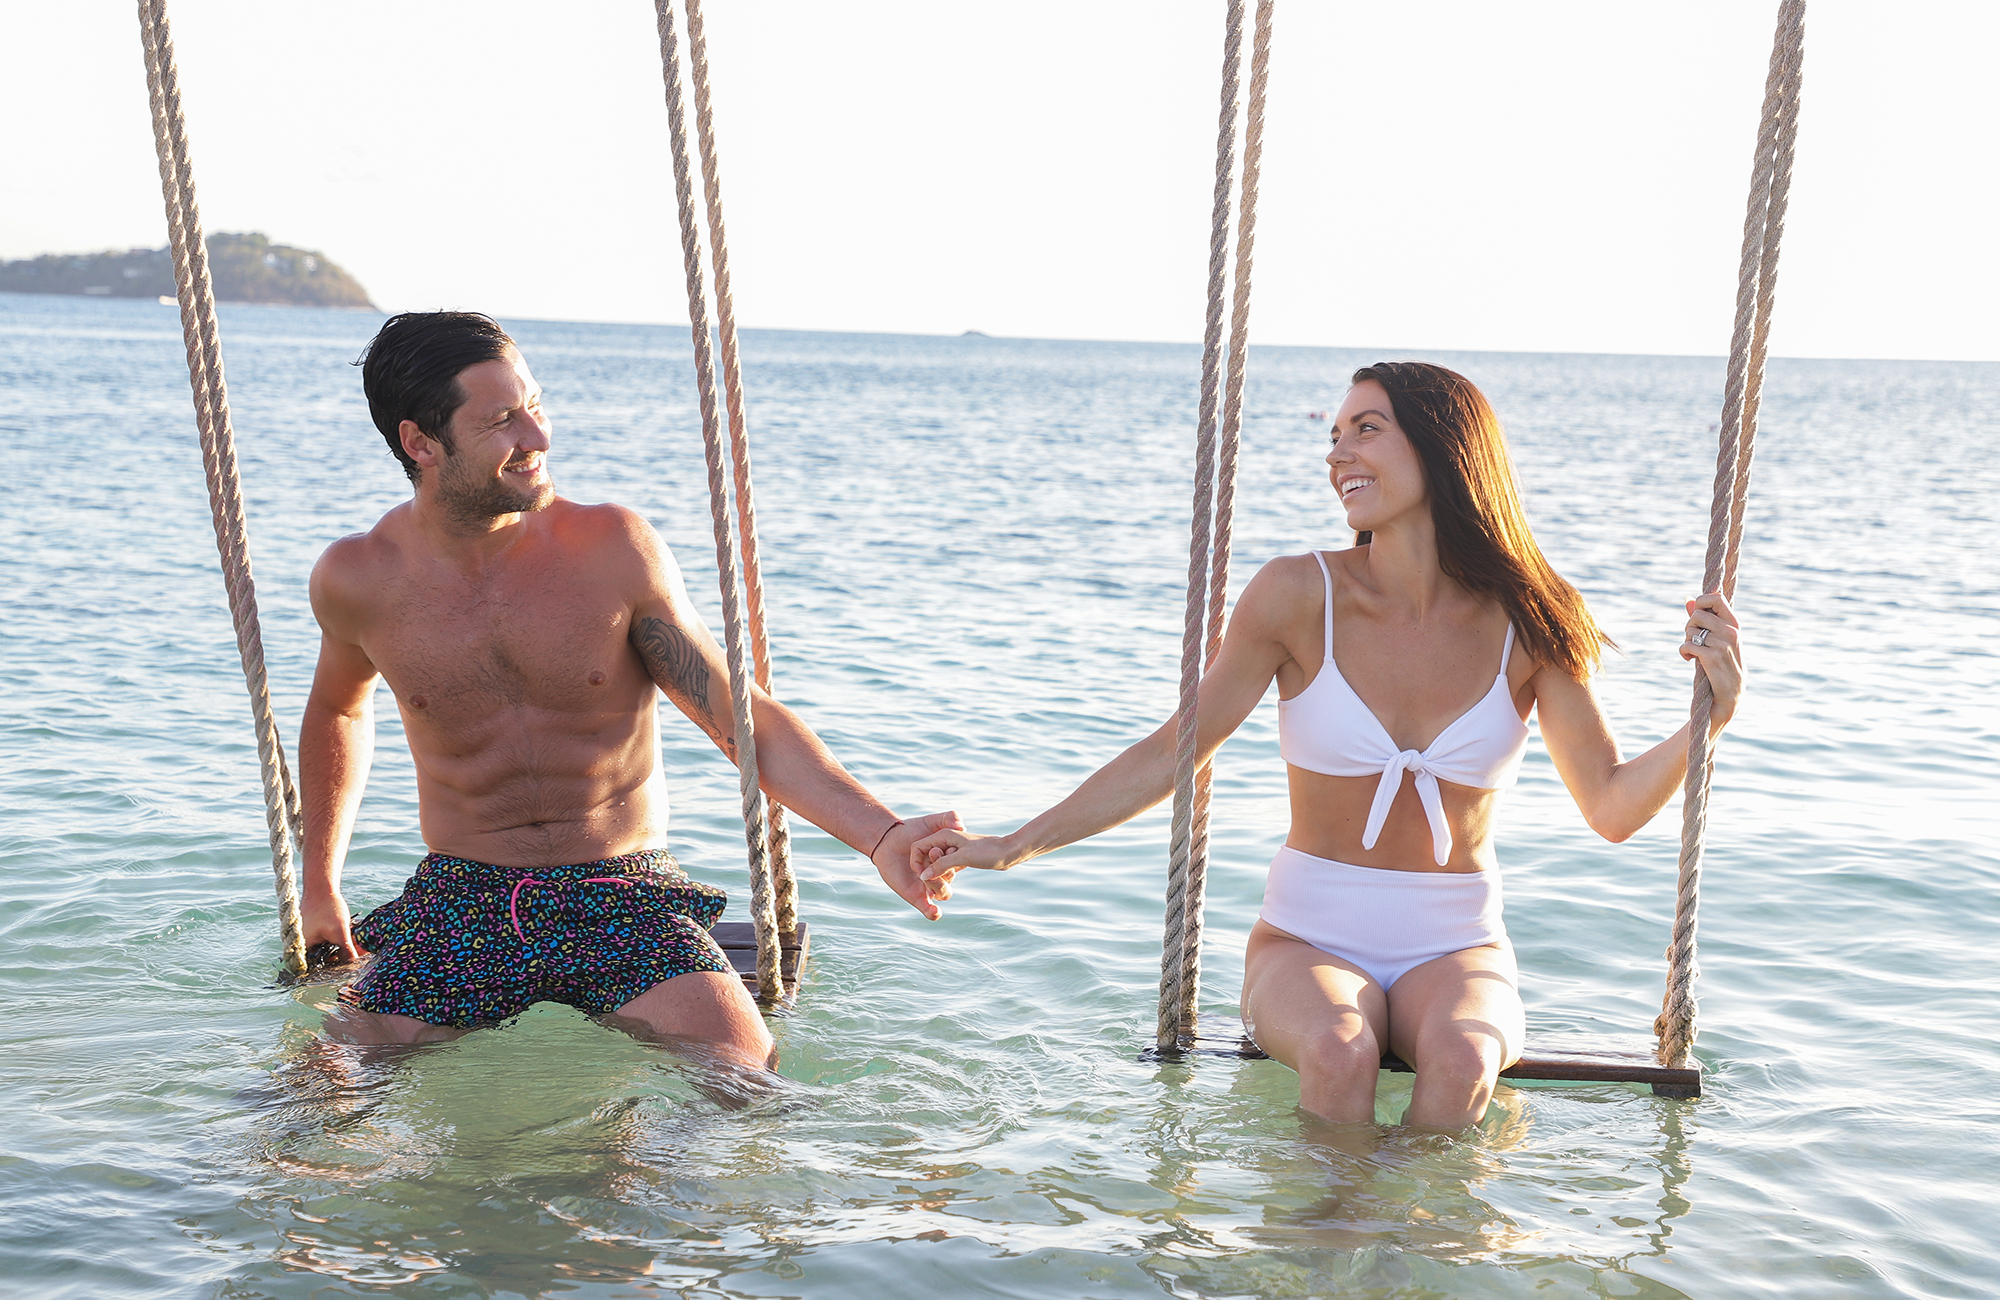 Val Chmerkovskiy Jenna Johnson Honeymoon - The newlyweds dated on and off since 2015 before he popped the question in June 2018.